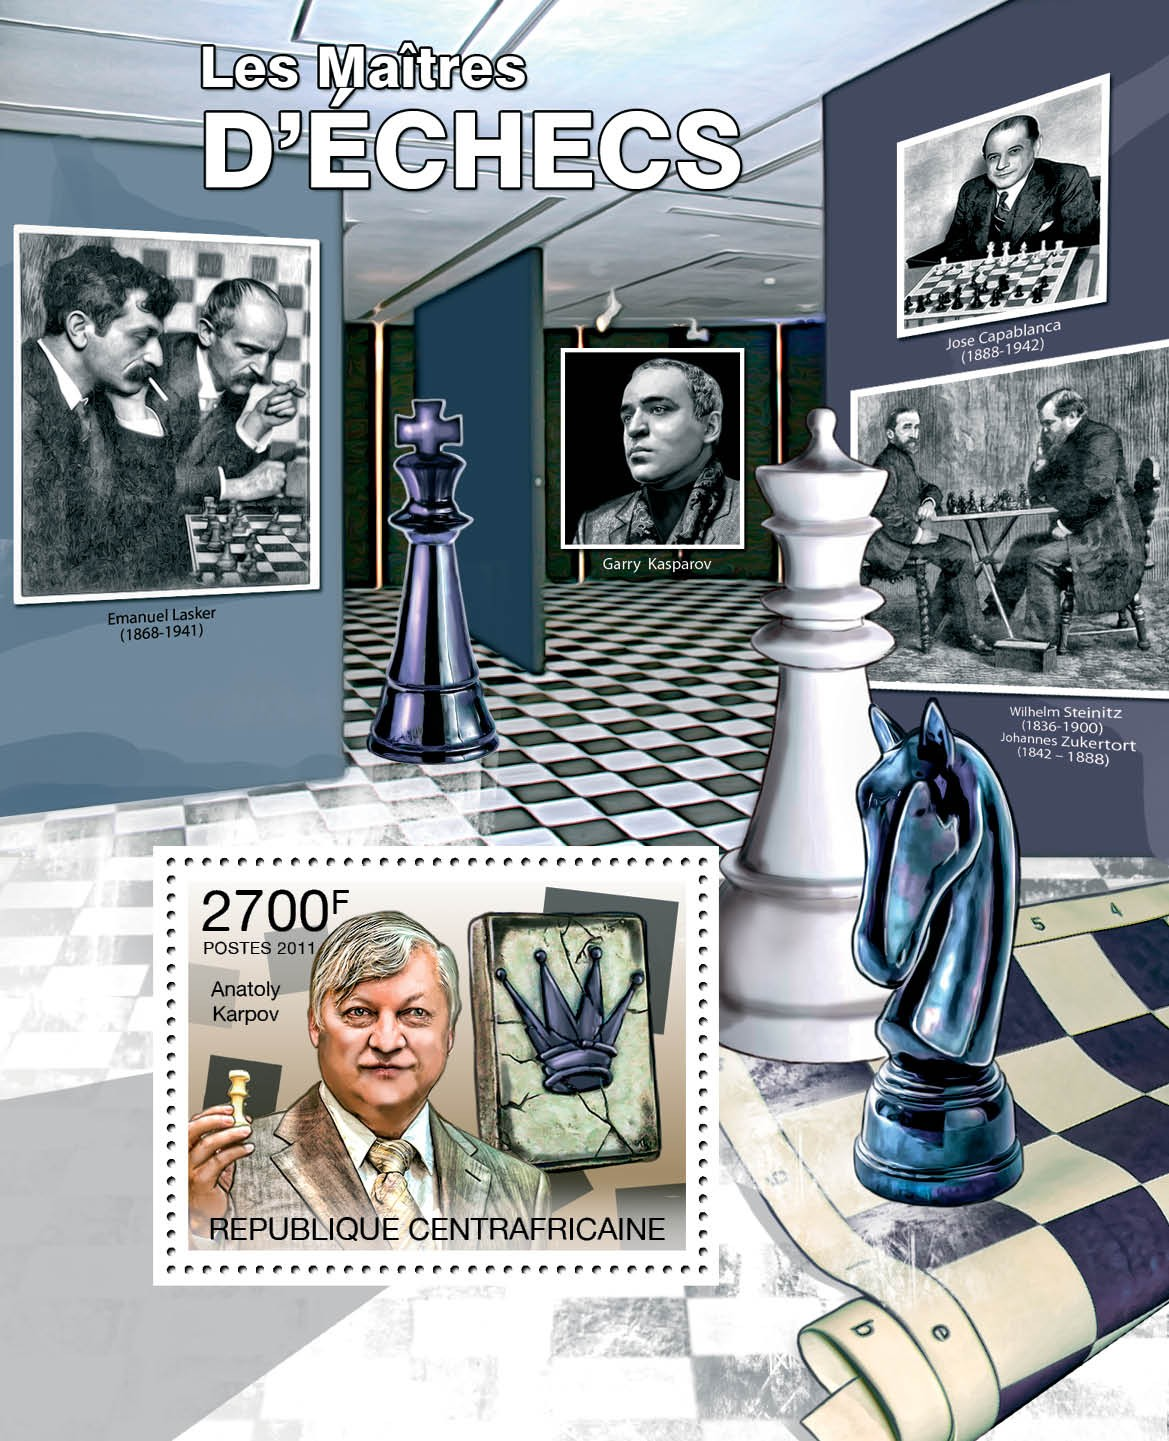 Chess Players, (Anatoly Karpov). - Issue of Central African republic postage stamps